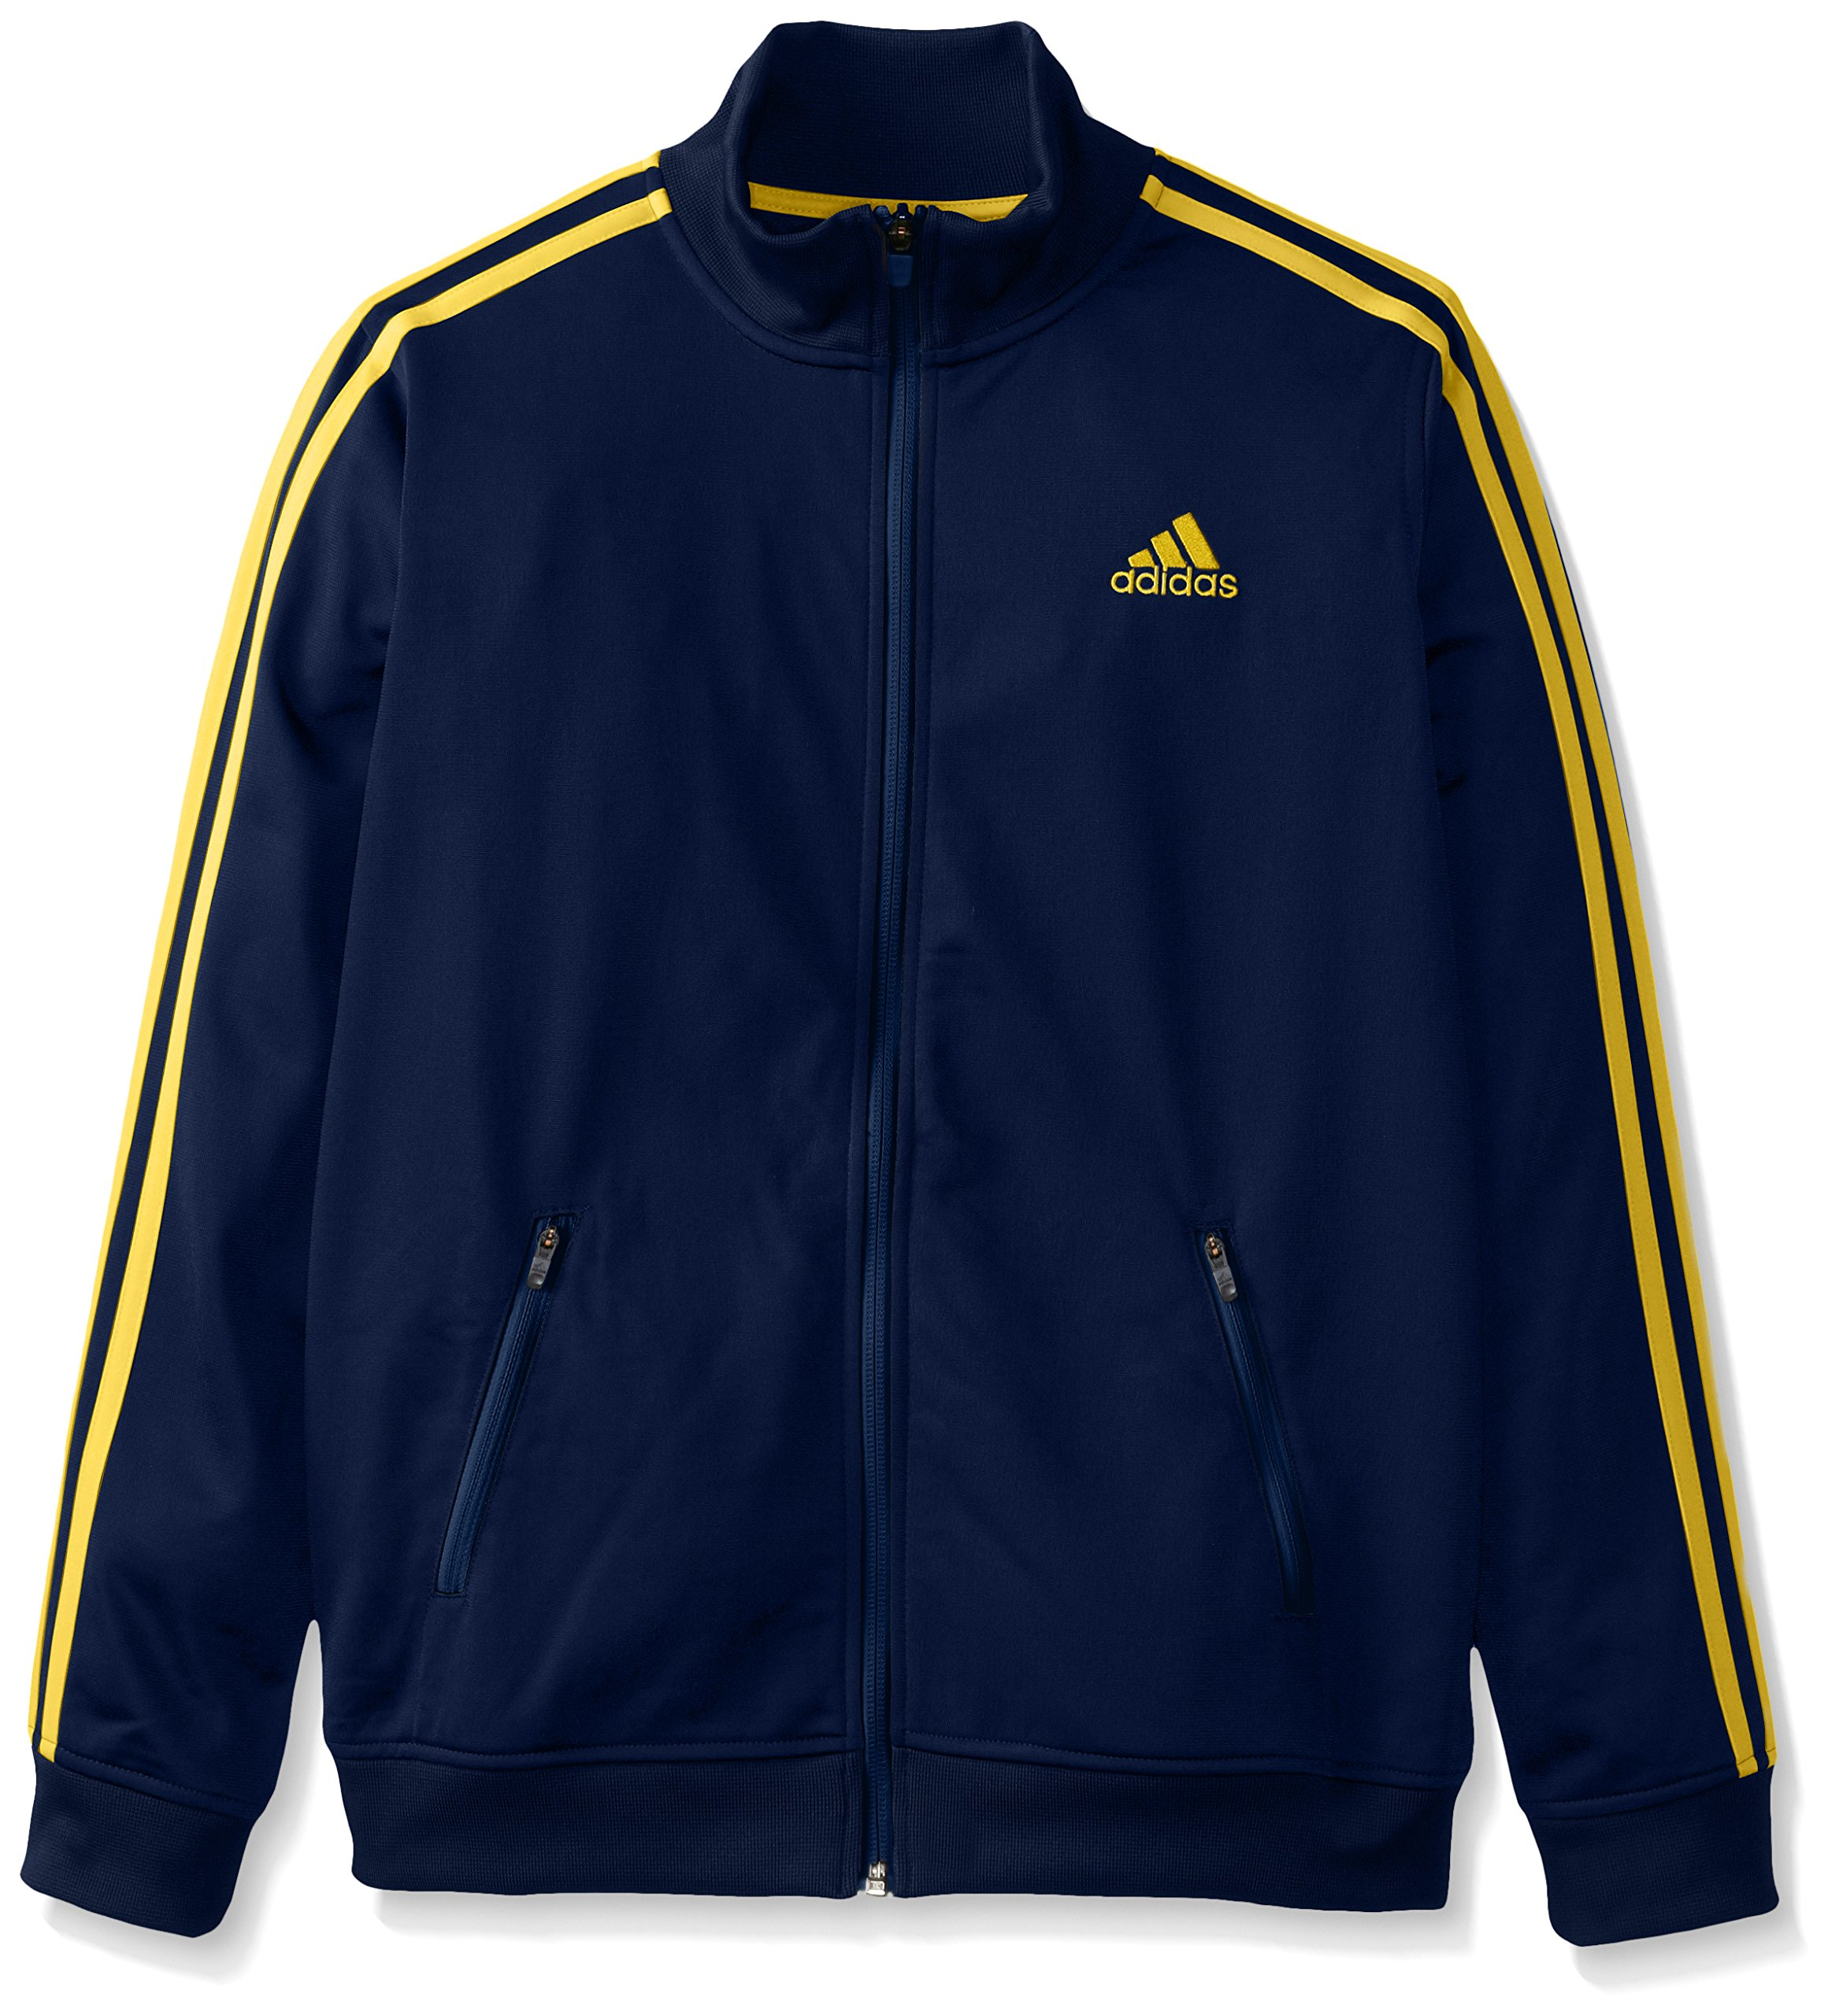 adidas Big Boys' Separates Training Track Jacket, Navy/Yellow, Small/8 by adidas